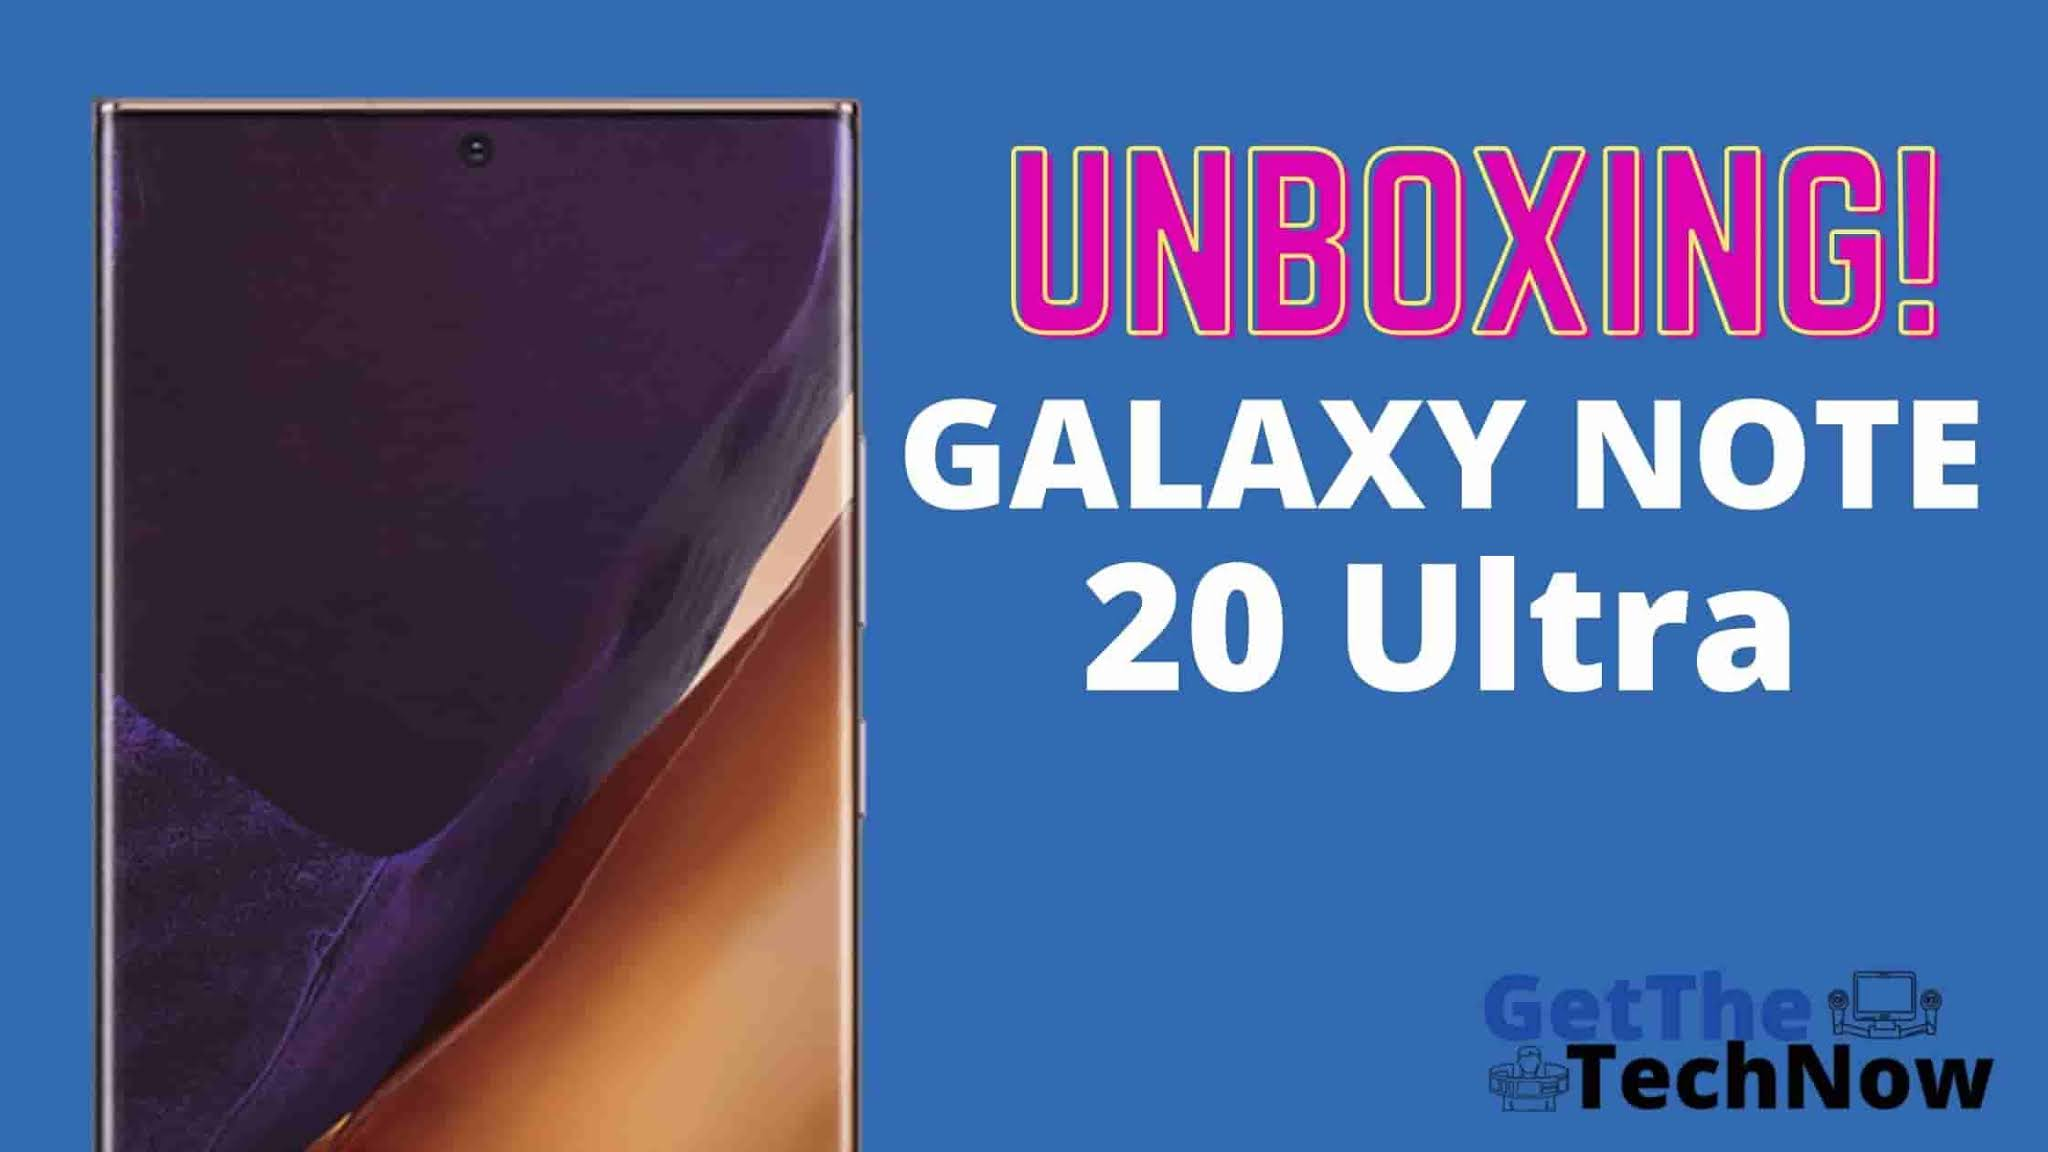 Unboxing of Galaxy Note 20 Ultra